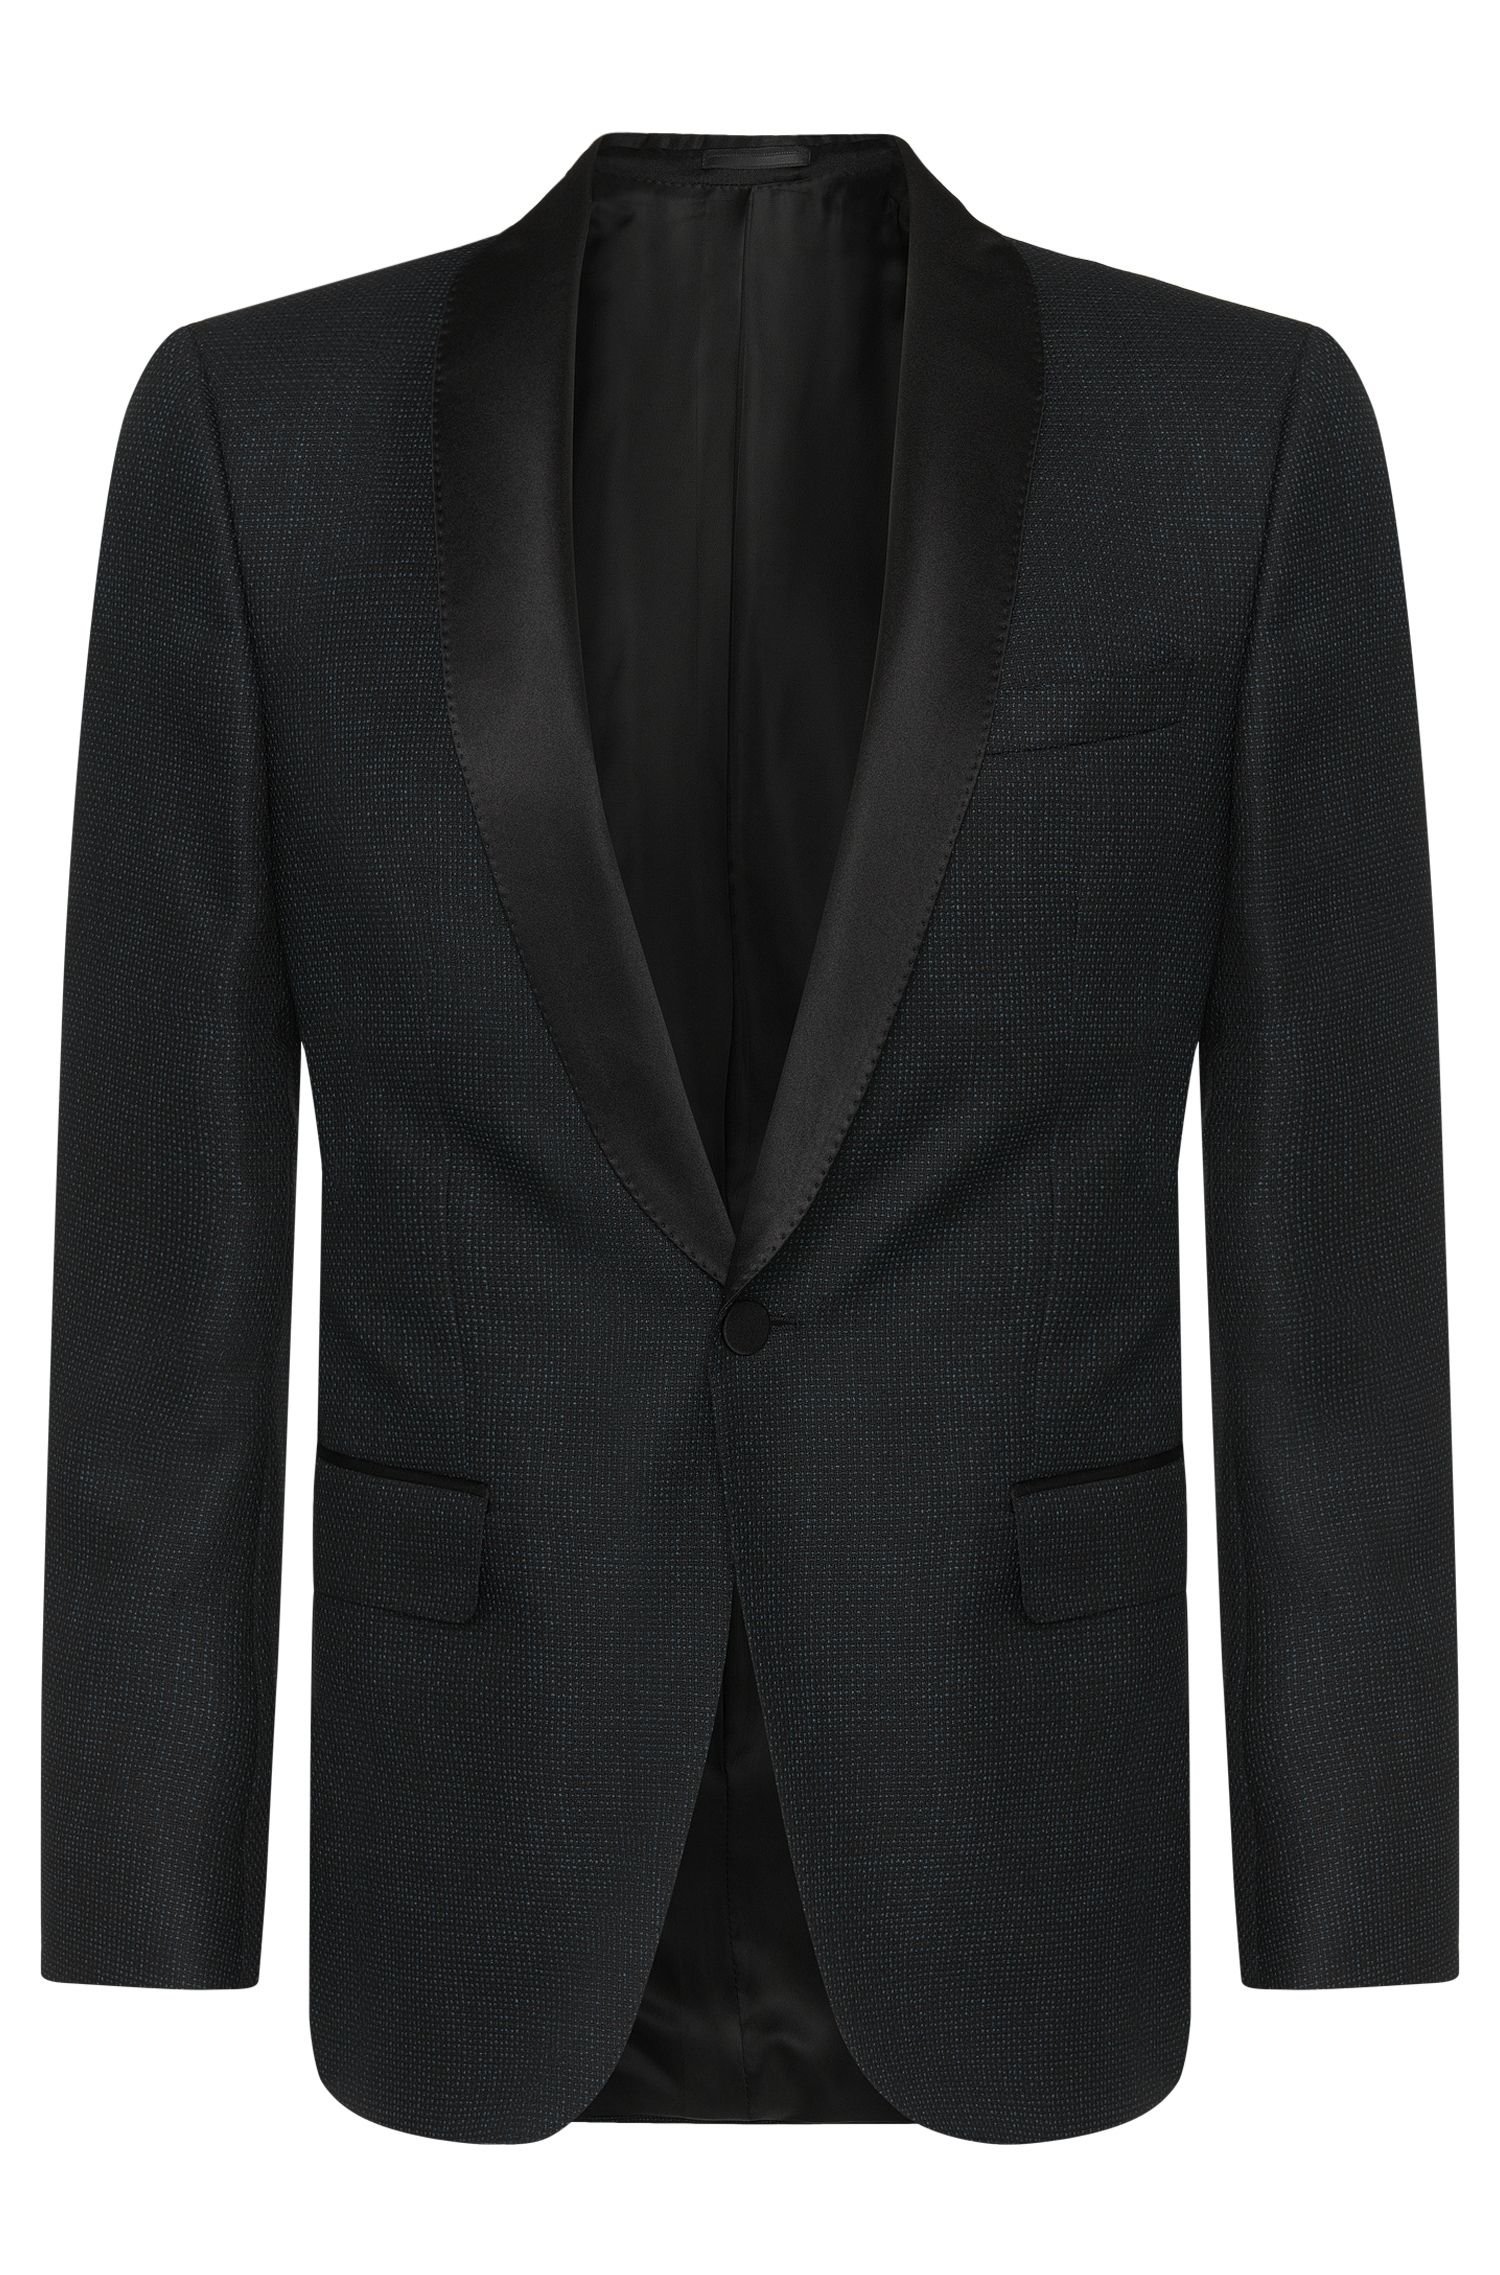 Italian Virgin Wool Blend Metallic Dinner Jacket, Slim Fit | Hockley